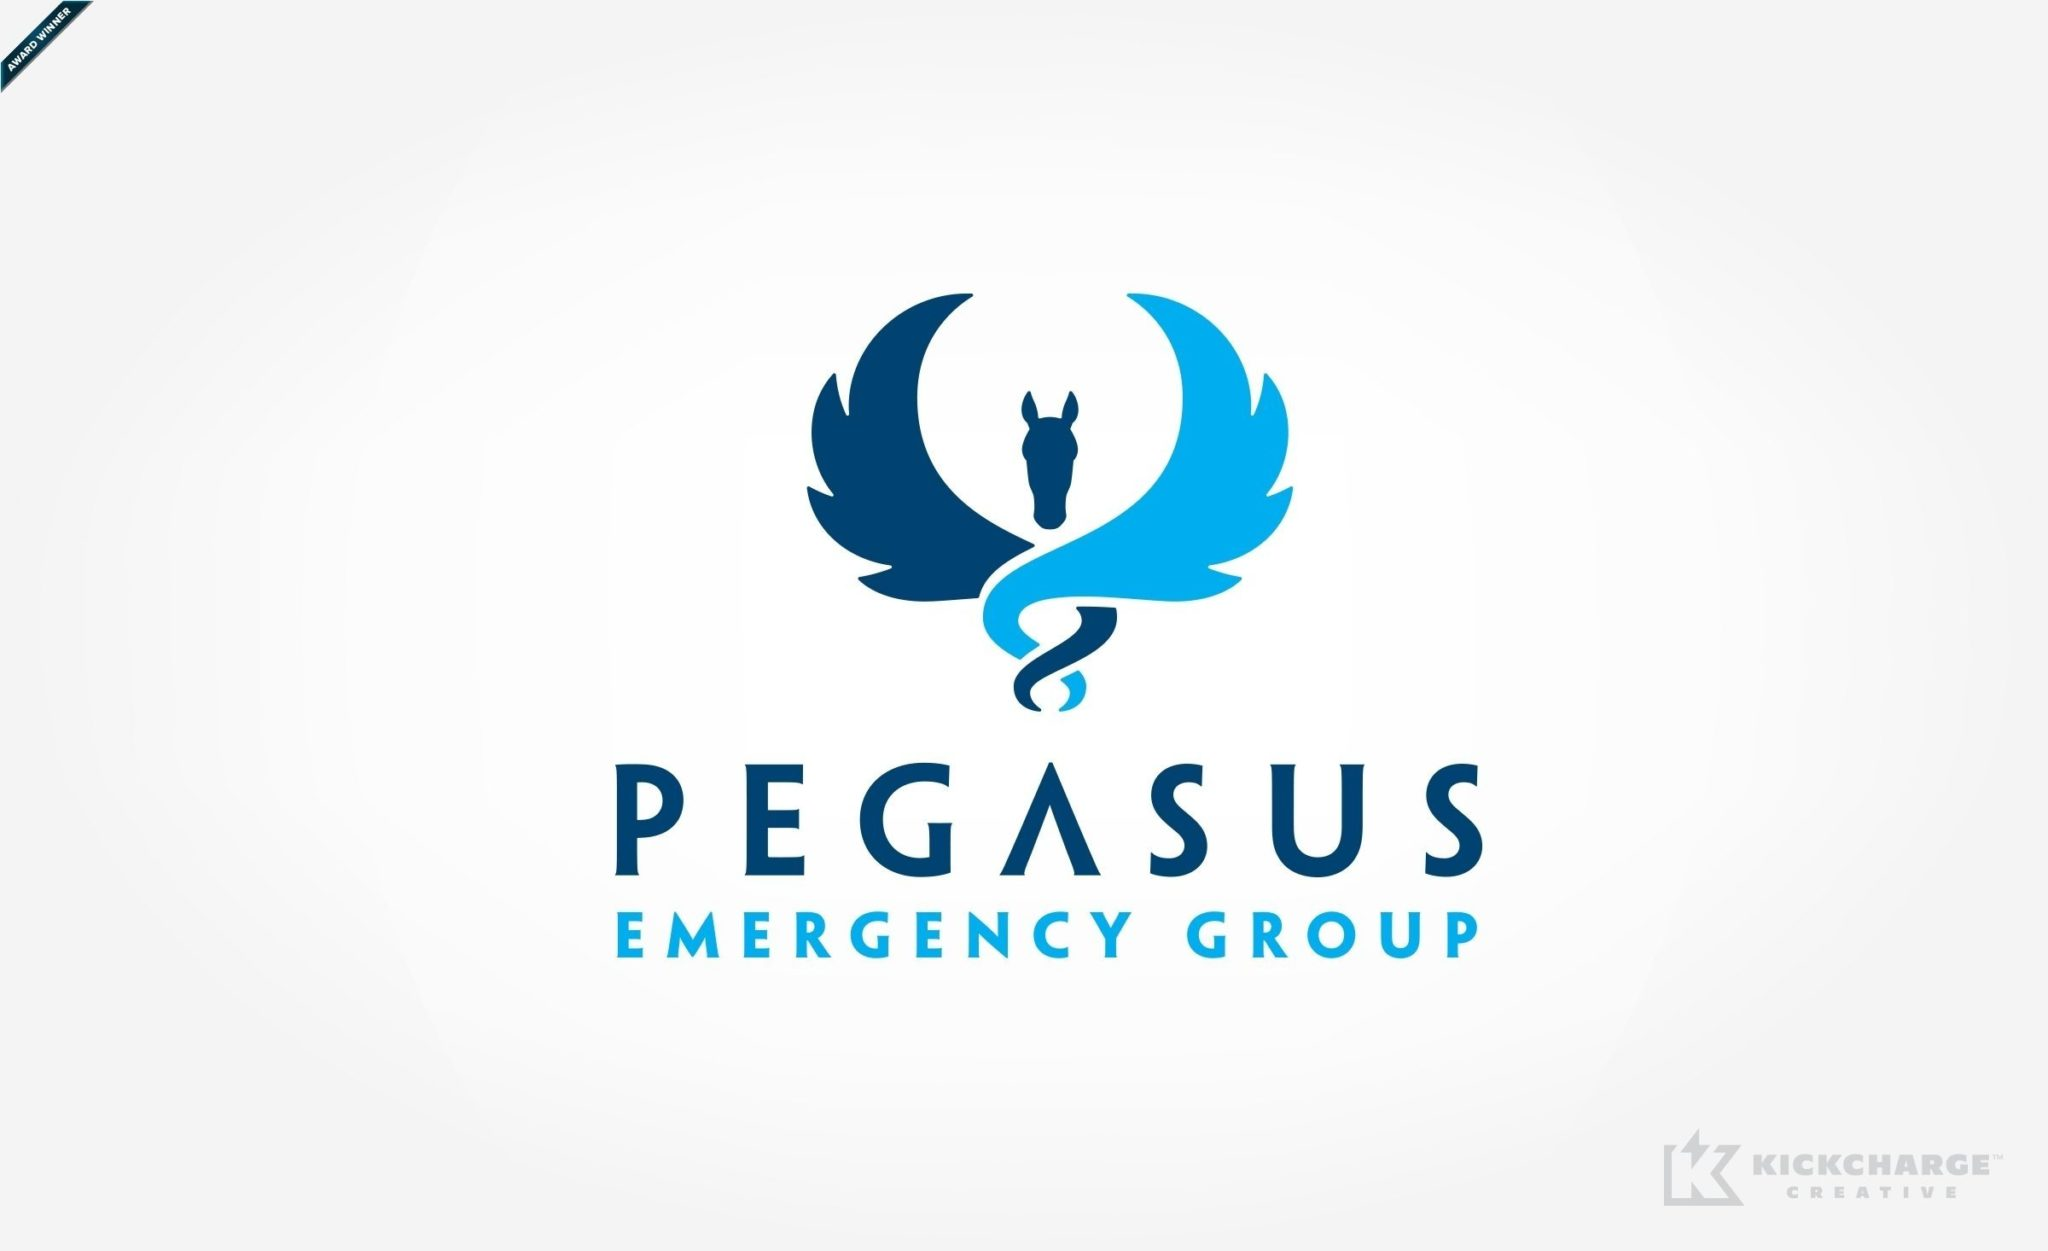 Pegasus Emergency Group